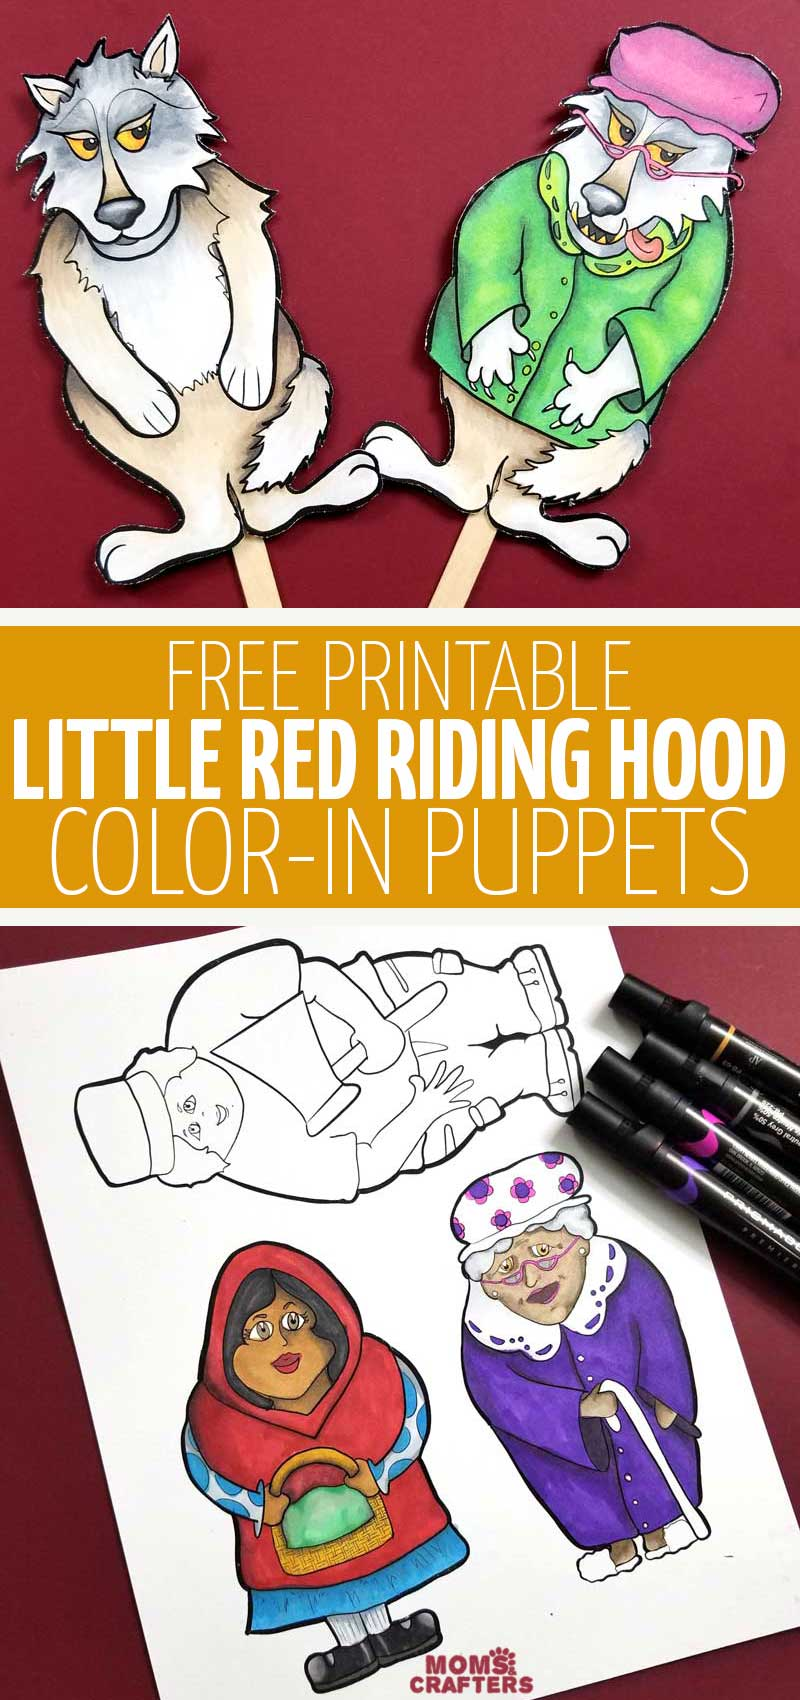 Click to download free printable little red riding hood puppets coloring pages - a fun literacy and dramatic playl activity for kids! This fun book inspired craft is perfect for teaching kids about stranger danger.